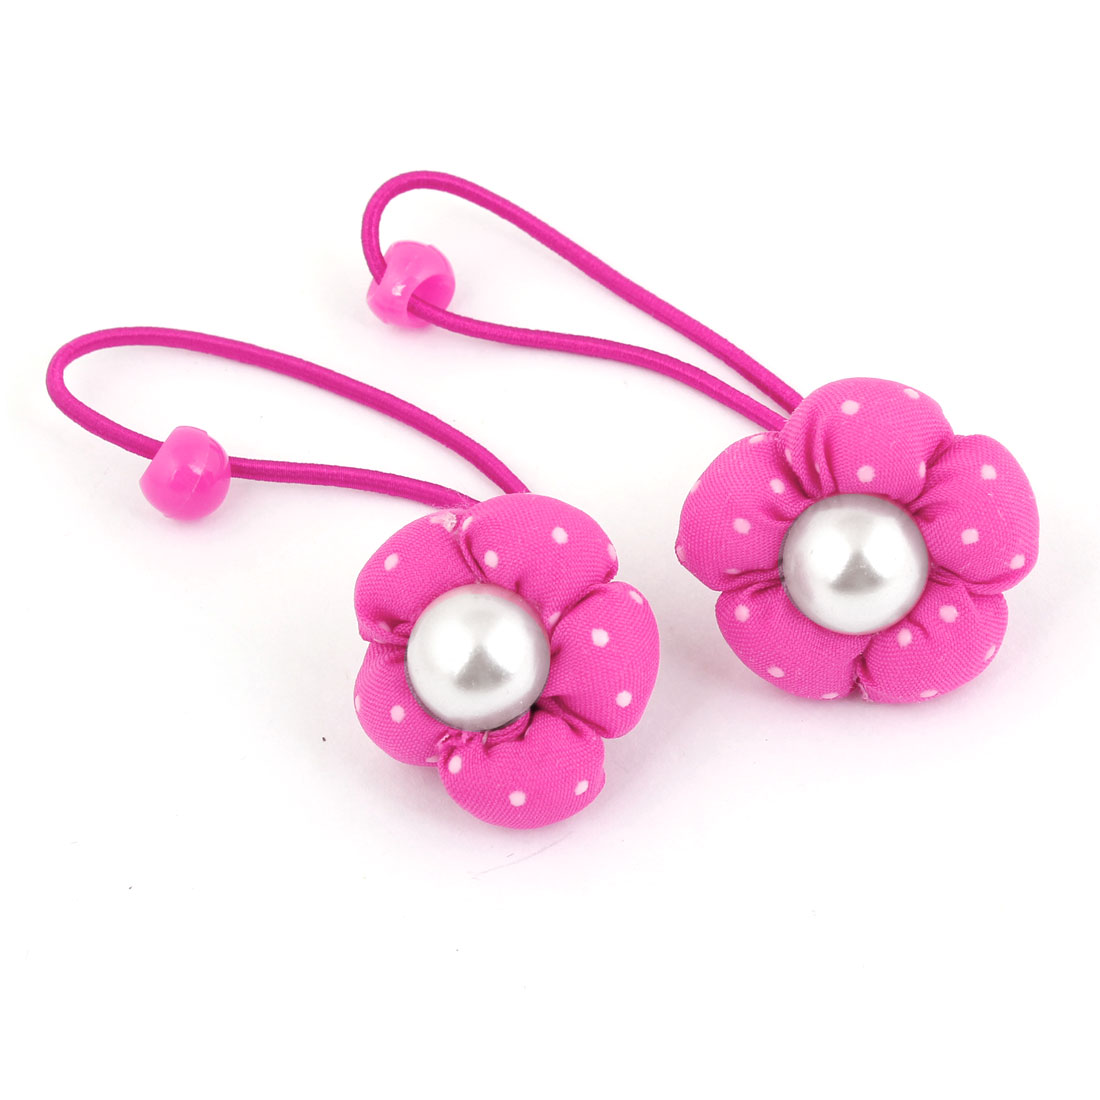 2PCS Fuchsia Floral Faux Pearl Decor Stretchy Hair Band Ponytail Holder for Lady